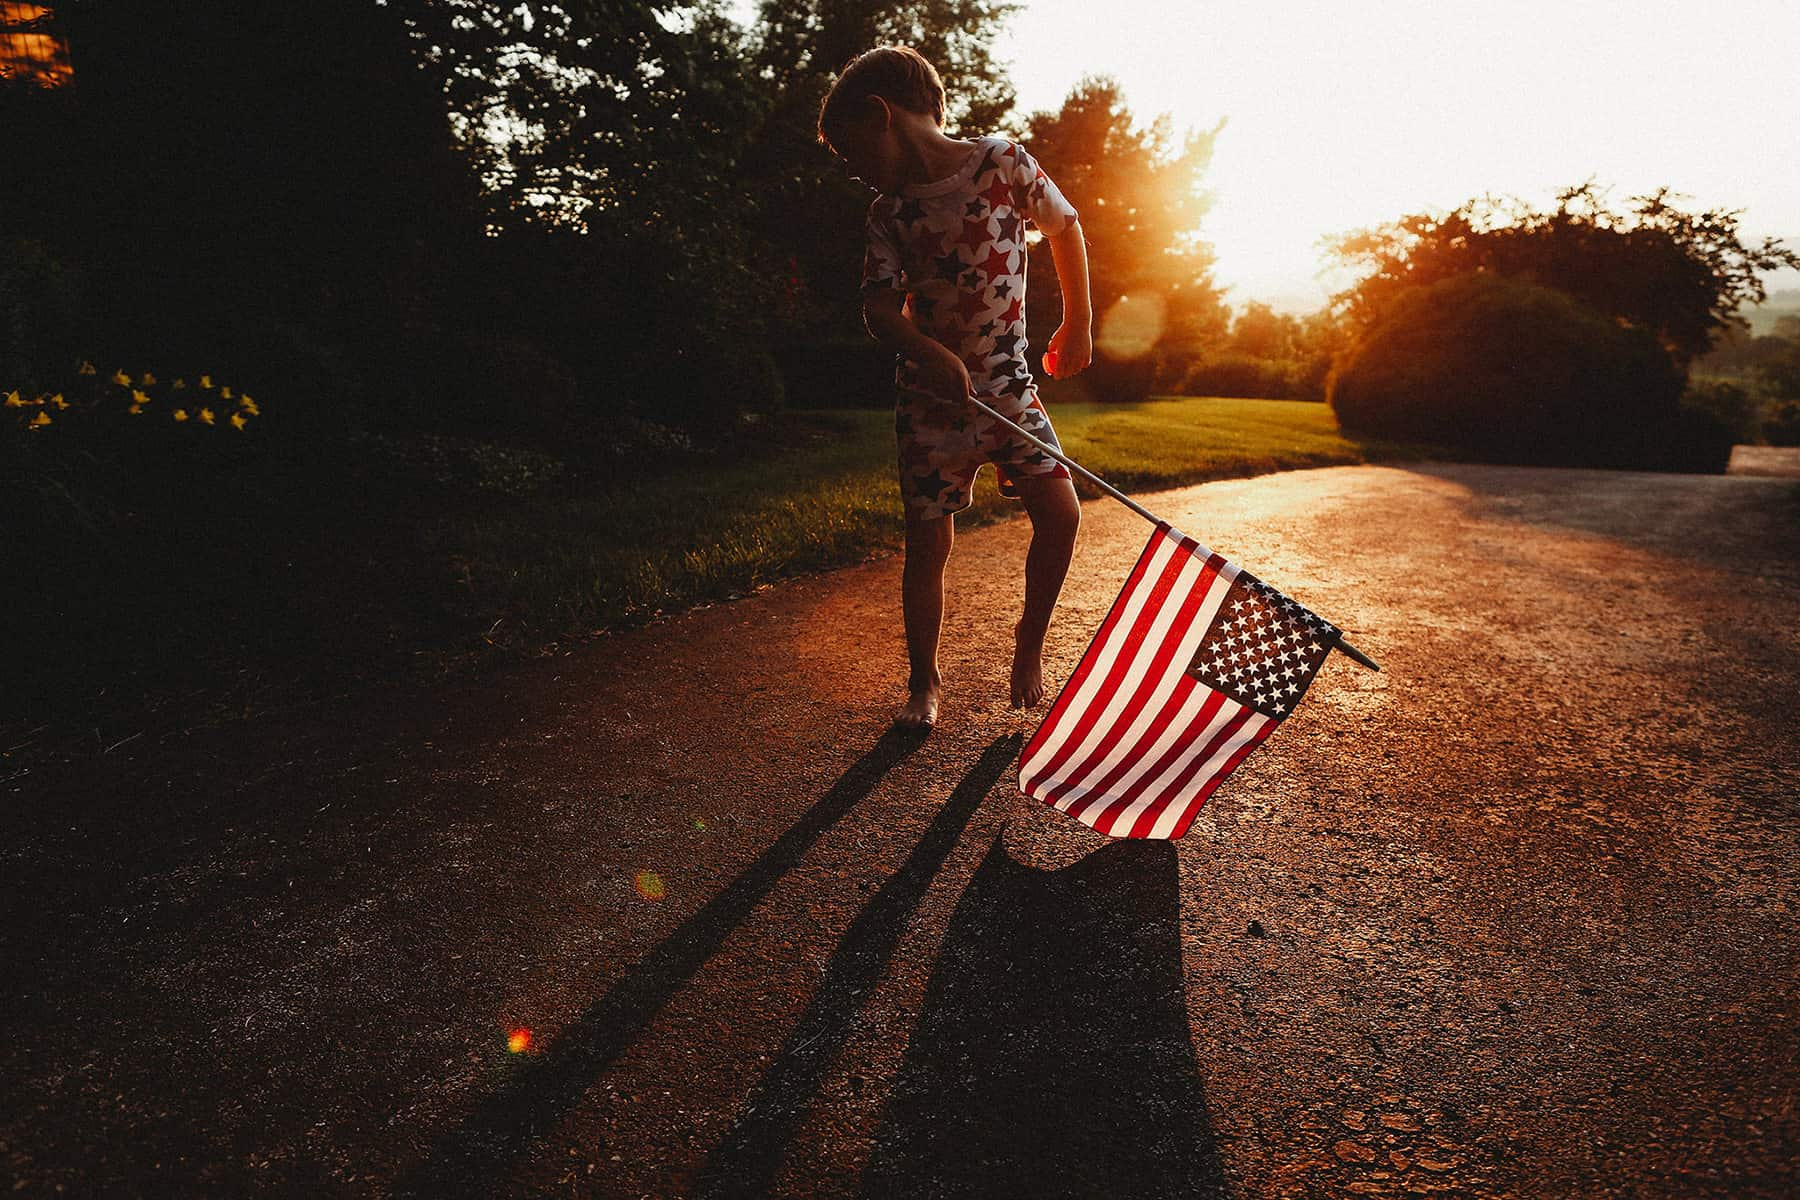 a 4th of July photo with a kid dancing at sunset with the US flag